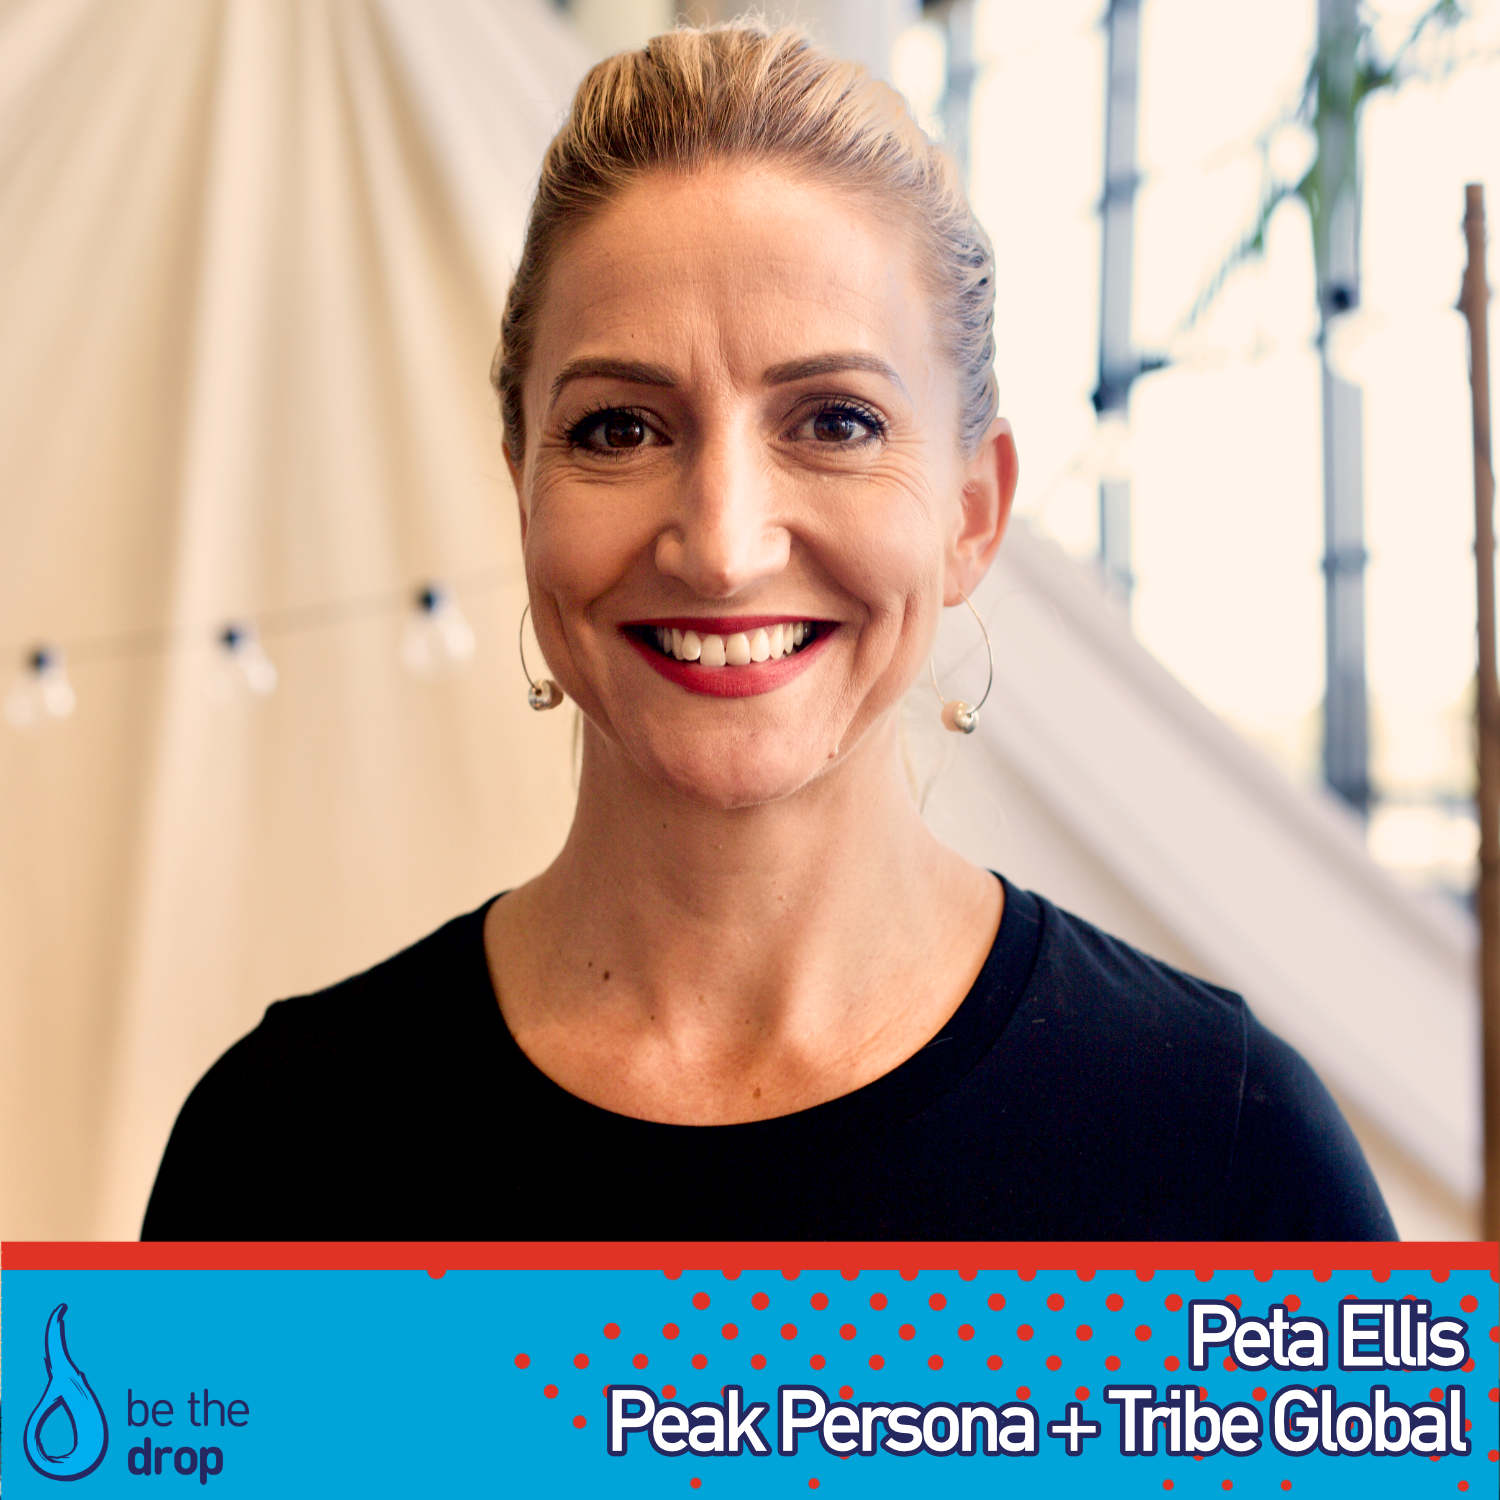 Peta Ellis shares her top business resources